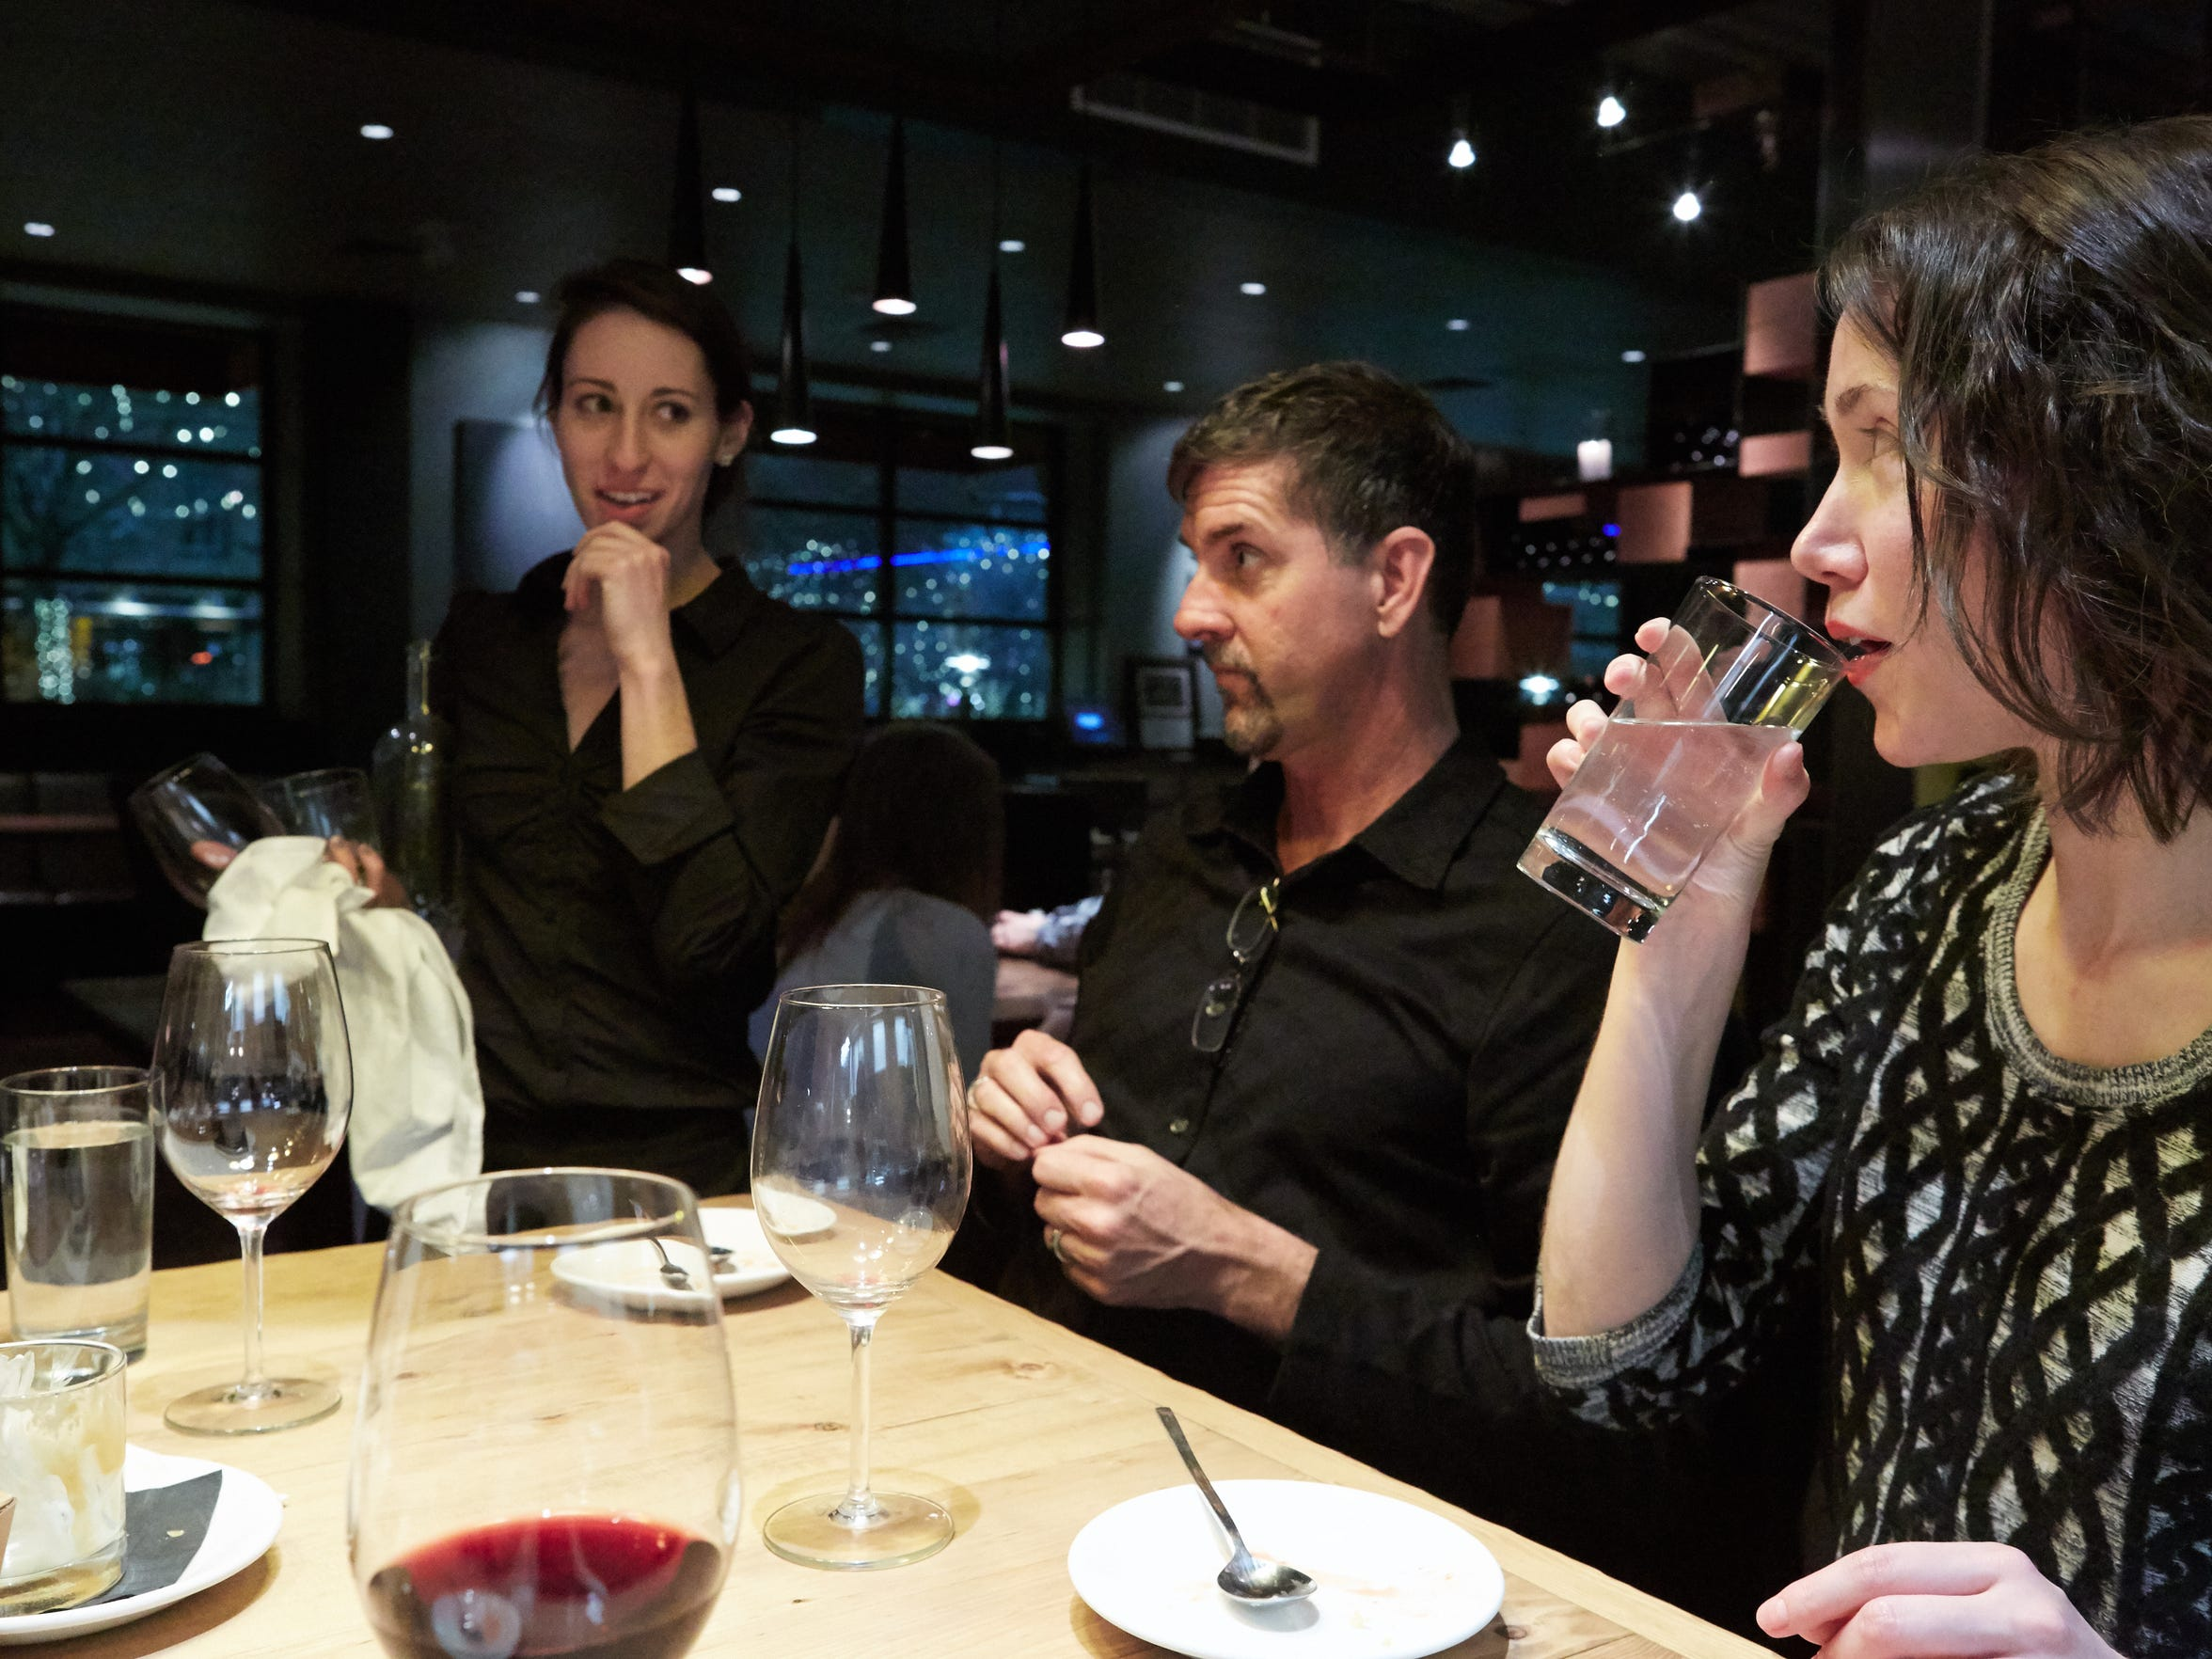 Michael Baietti and Josie Sexton discuss their dining experience with server Sarah during dessert at RARE Italian Sunday, January 11, 2015.